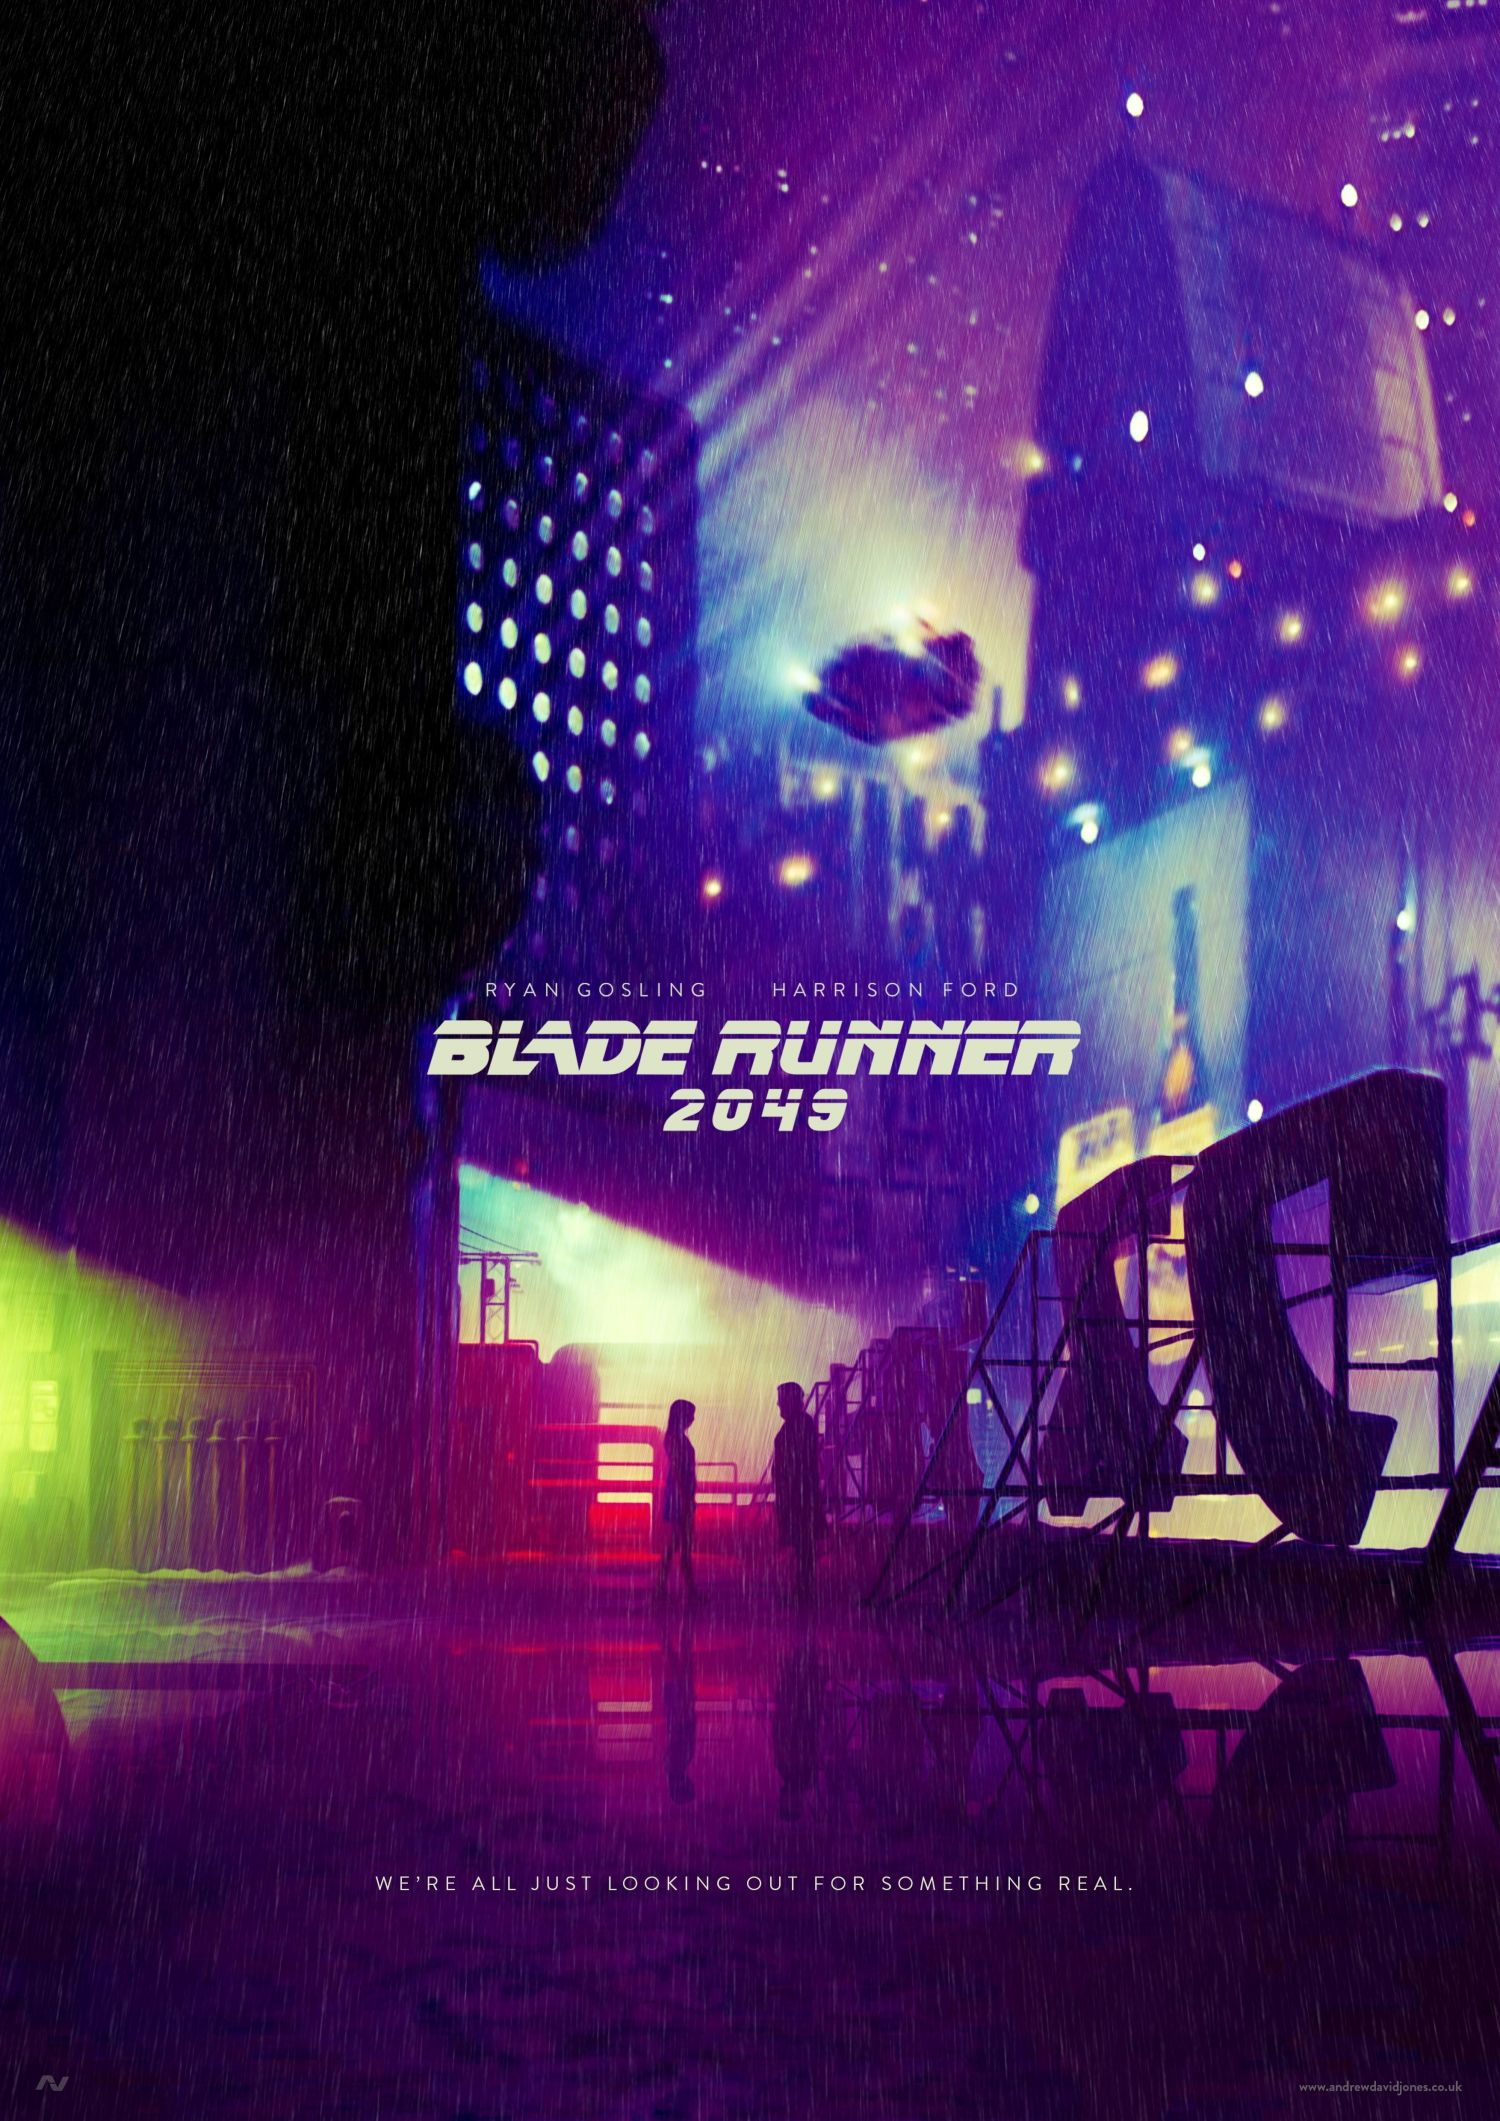 Blade Runner 2049 I Reccomend But Probably If You Re Young Skip